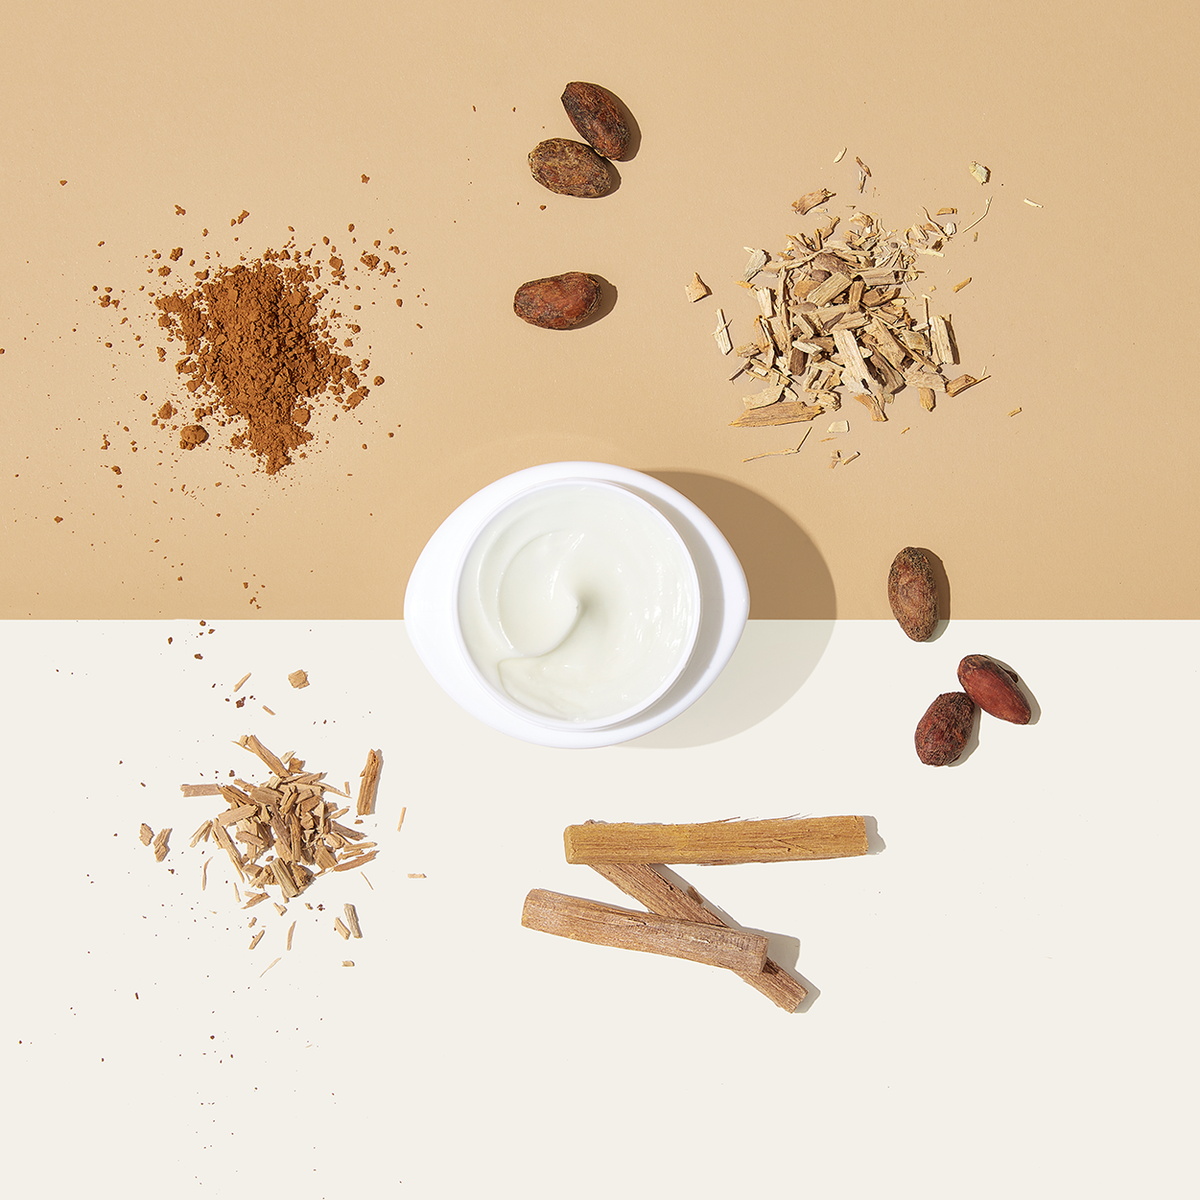 NEW Tummy Rub Butter in Cocoabean & Sandalwood